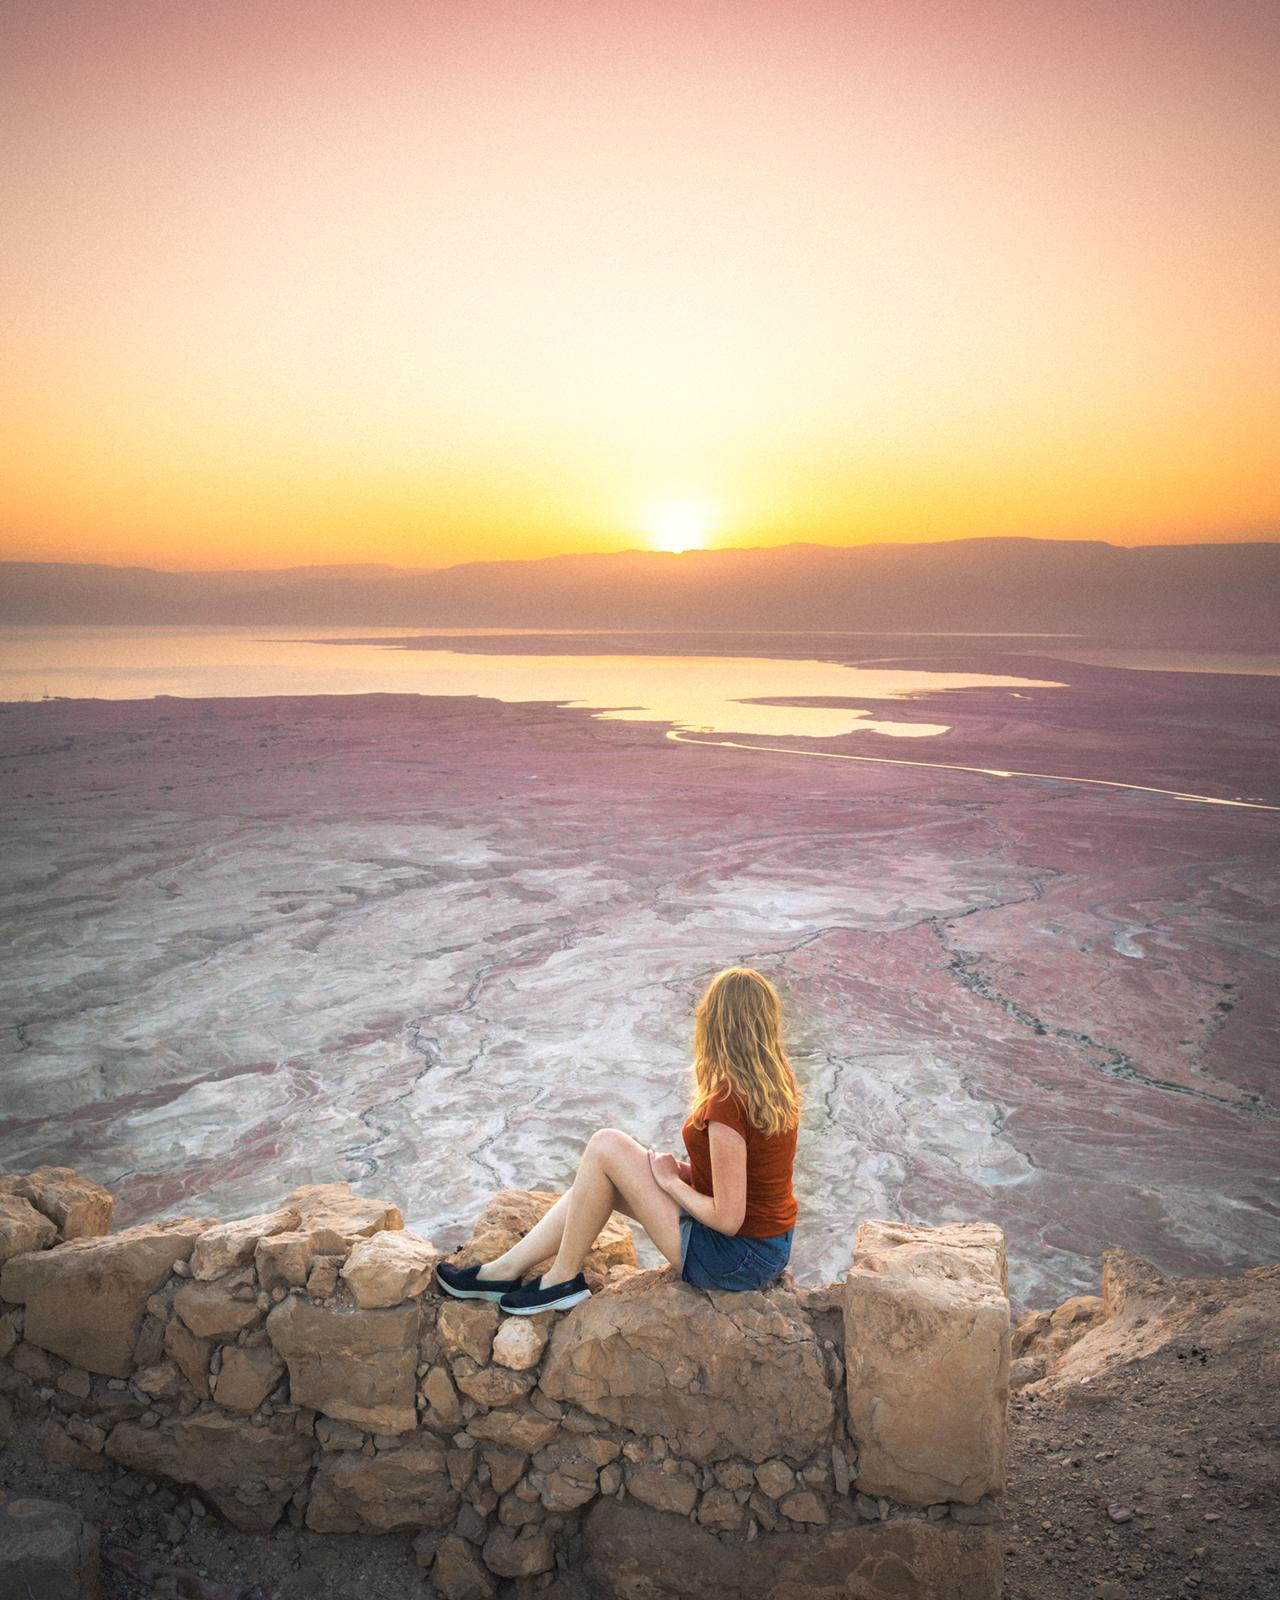 Masada Fortress Sunrise - Instagrammable places in Israel